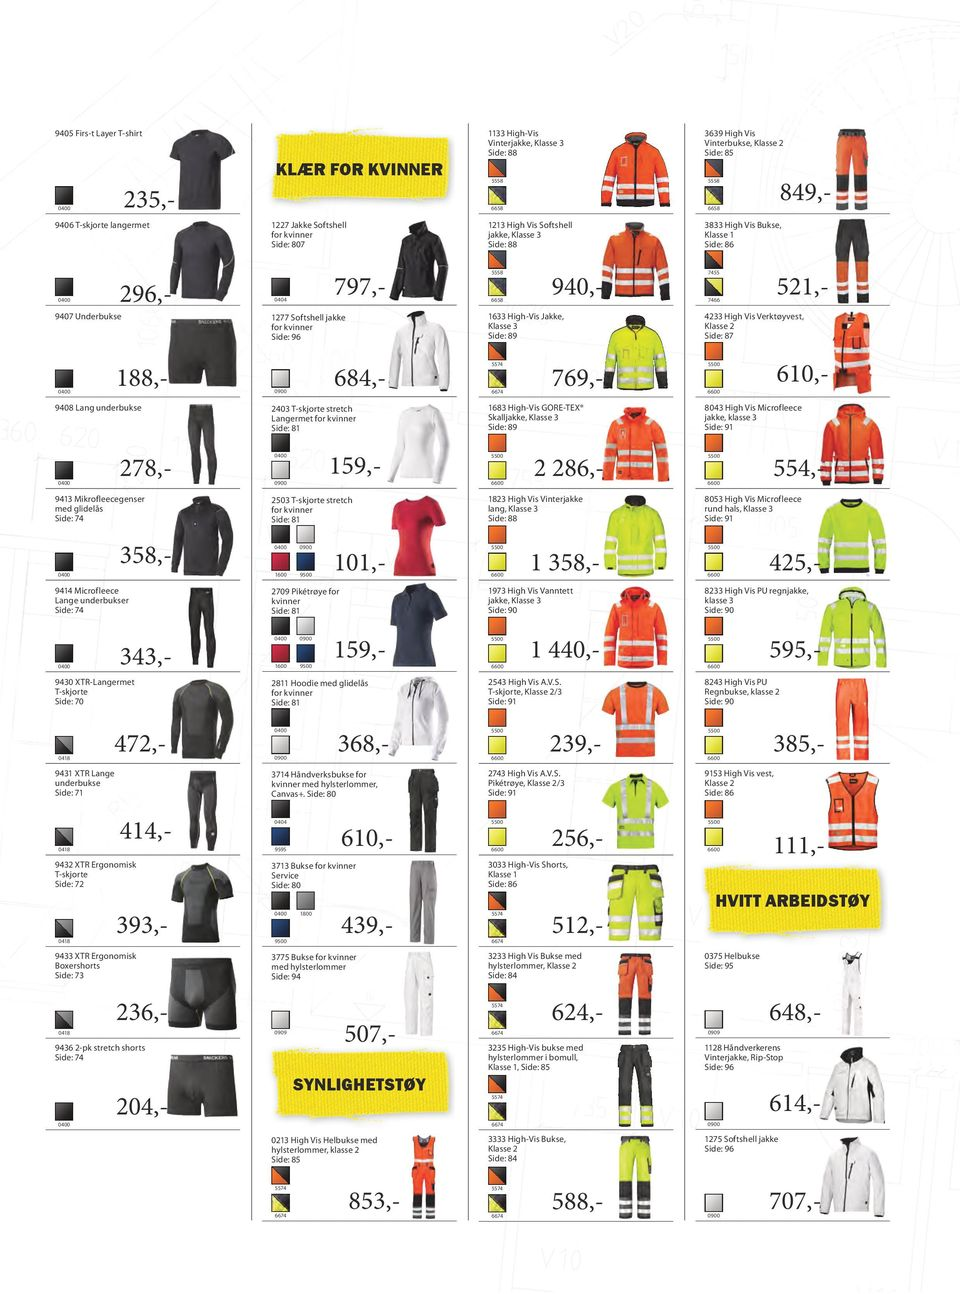 High-Vis Jakke, Klasse 3 Side: 89 4233 High Vis Verktøyvest, Klasse 2 Side: 87 188,- 684,- 769,- 610,- 9408 ang underbukse 2403 T-skjorte stretch angermet Side: 81 1683 High-Vis GOE-TEX Skalljakke,